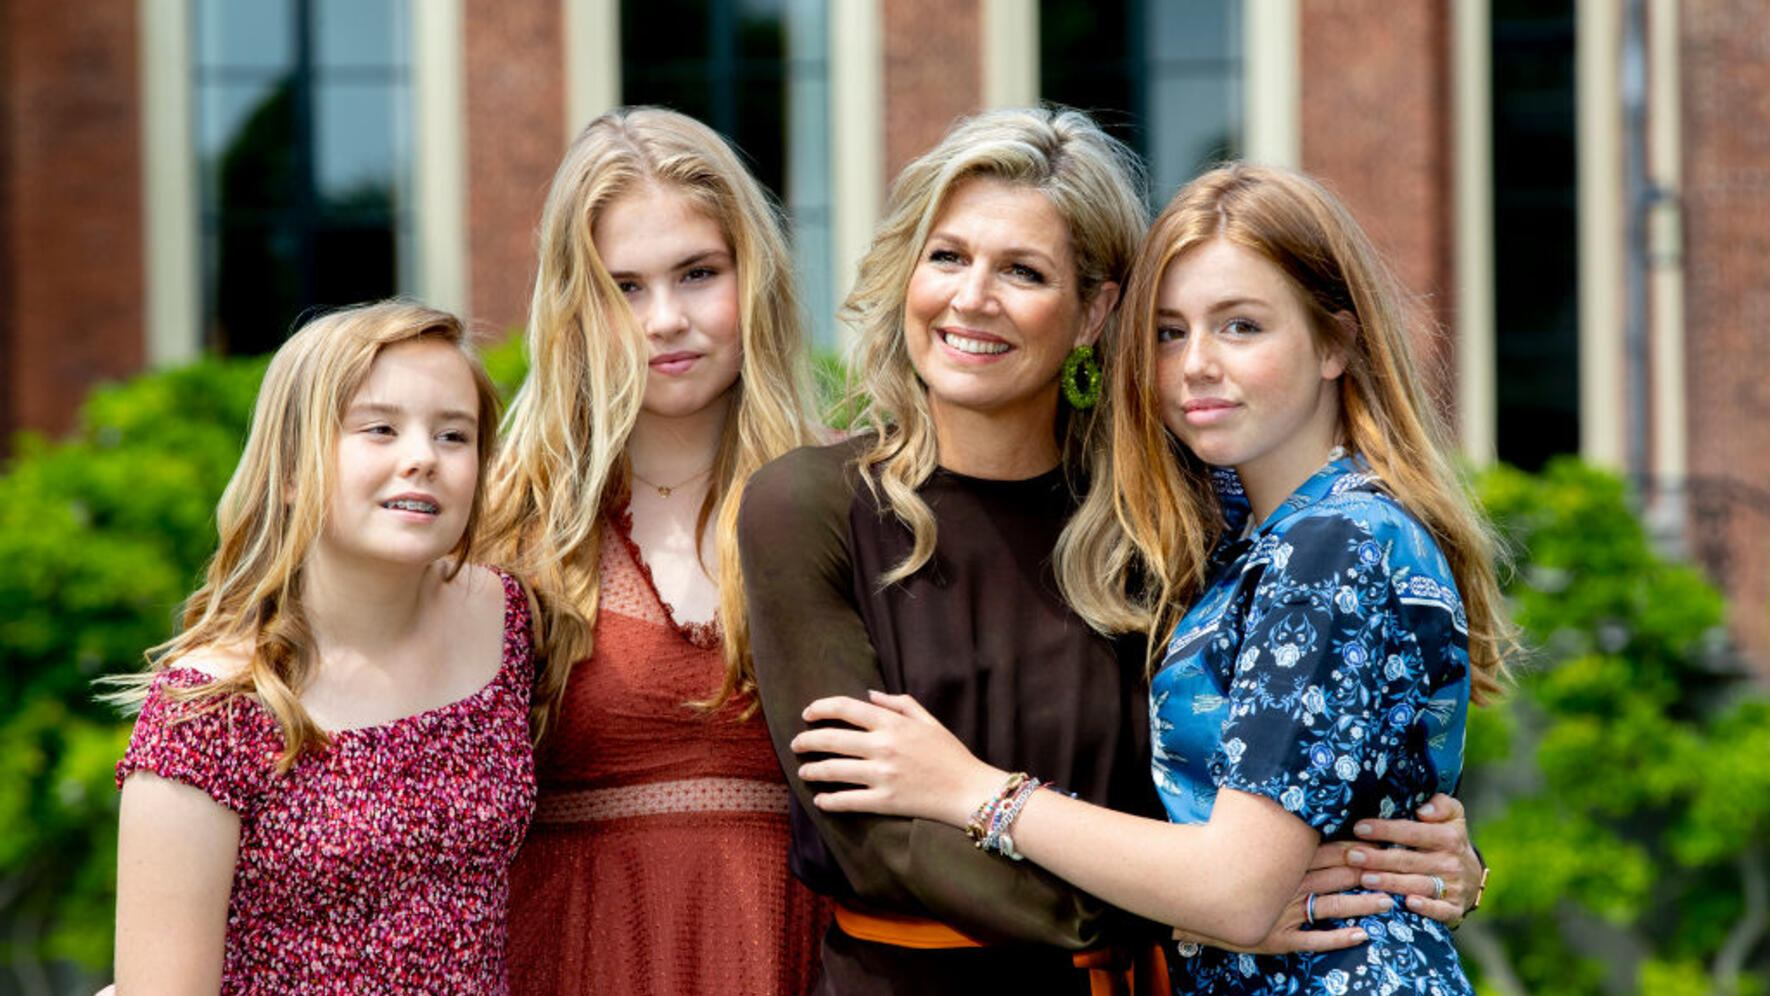 THE HAGUE, NETHERLANDS - JULY 19: Queen Maxima of The Netherlands, Princess Amalia of The Netherlands, Princess Alexia of The Netherlands and Princess Ariane of The Netherlands during their annual summer photo session at Huis ten Bosch Palace on July 19, 2019 in The Hague, Netherlands. (Photo by Patrick van Katwijk/WireImage)